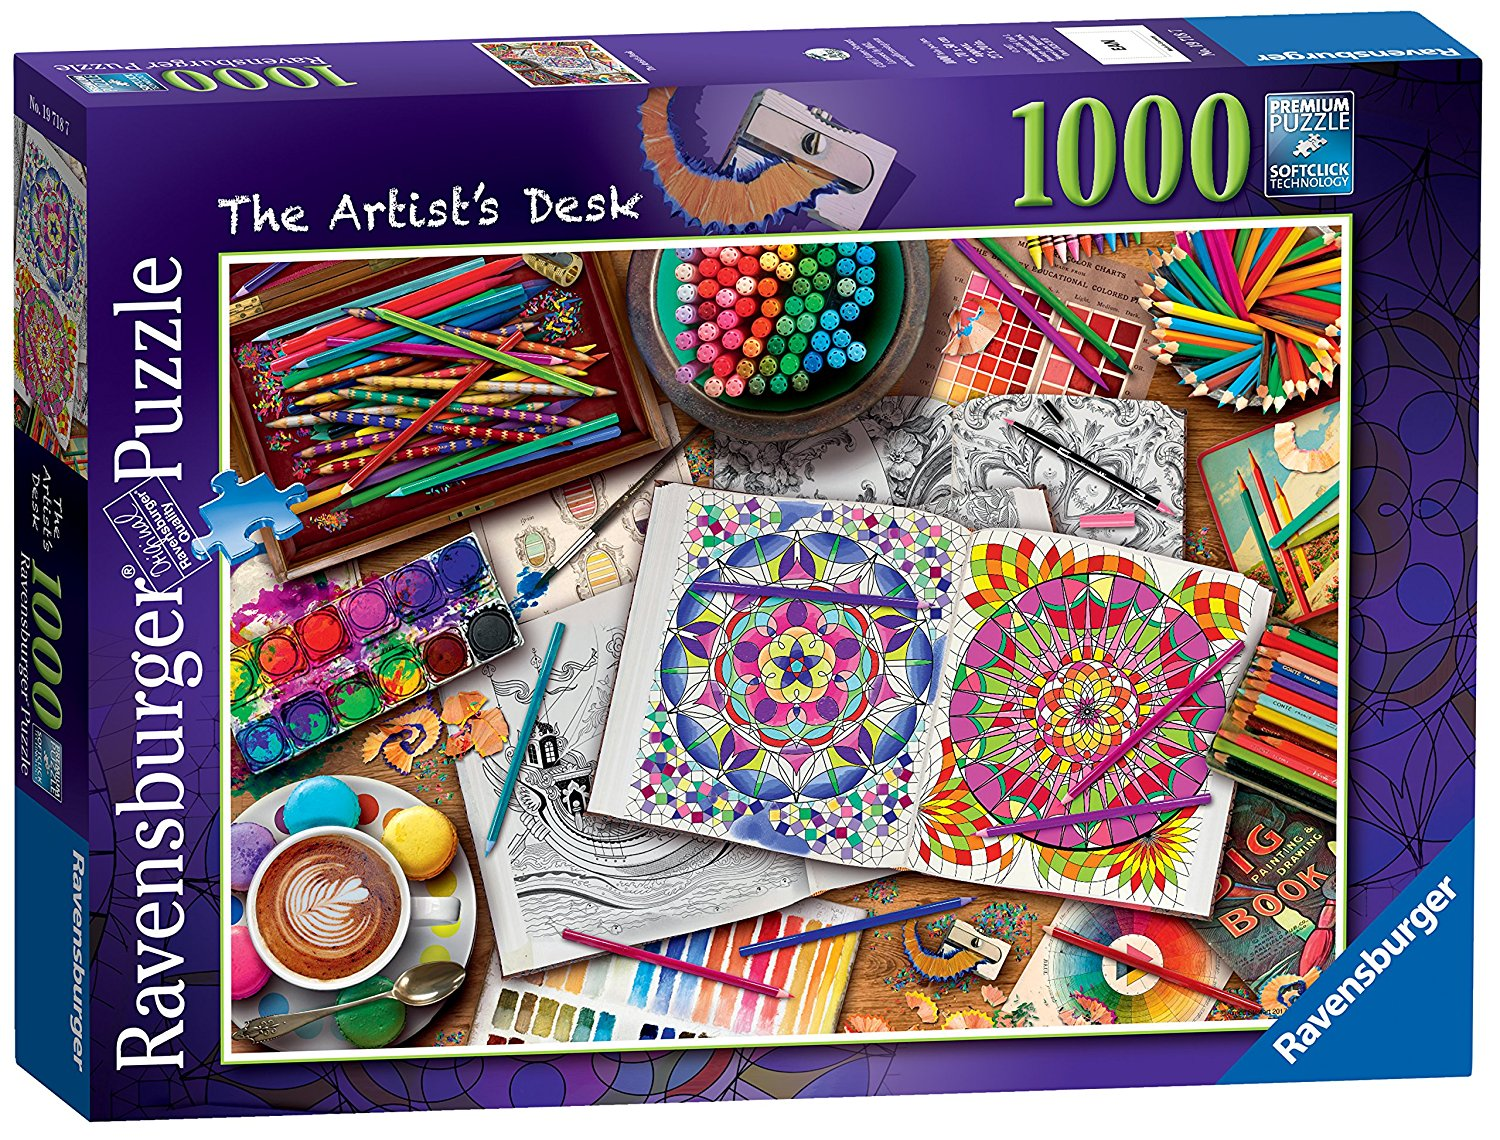 The Artist's Desk, 1000pc